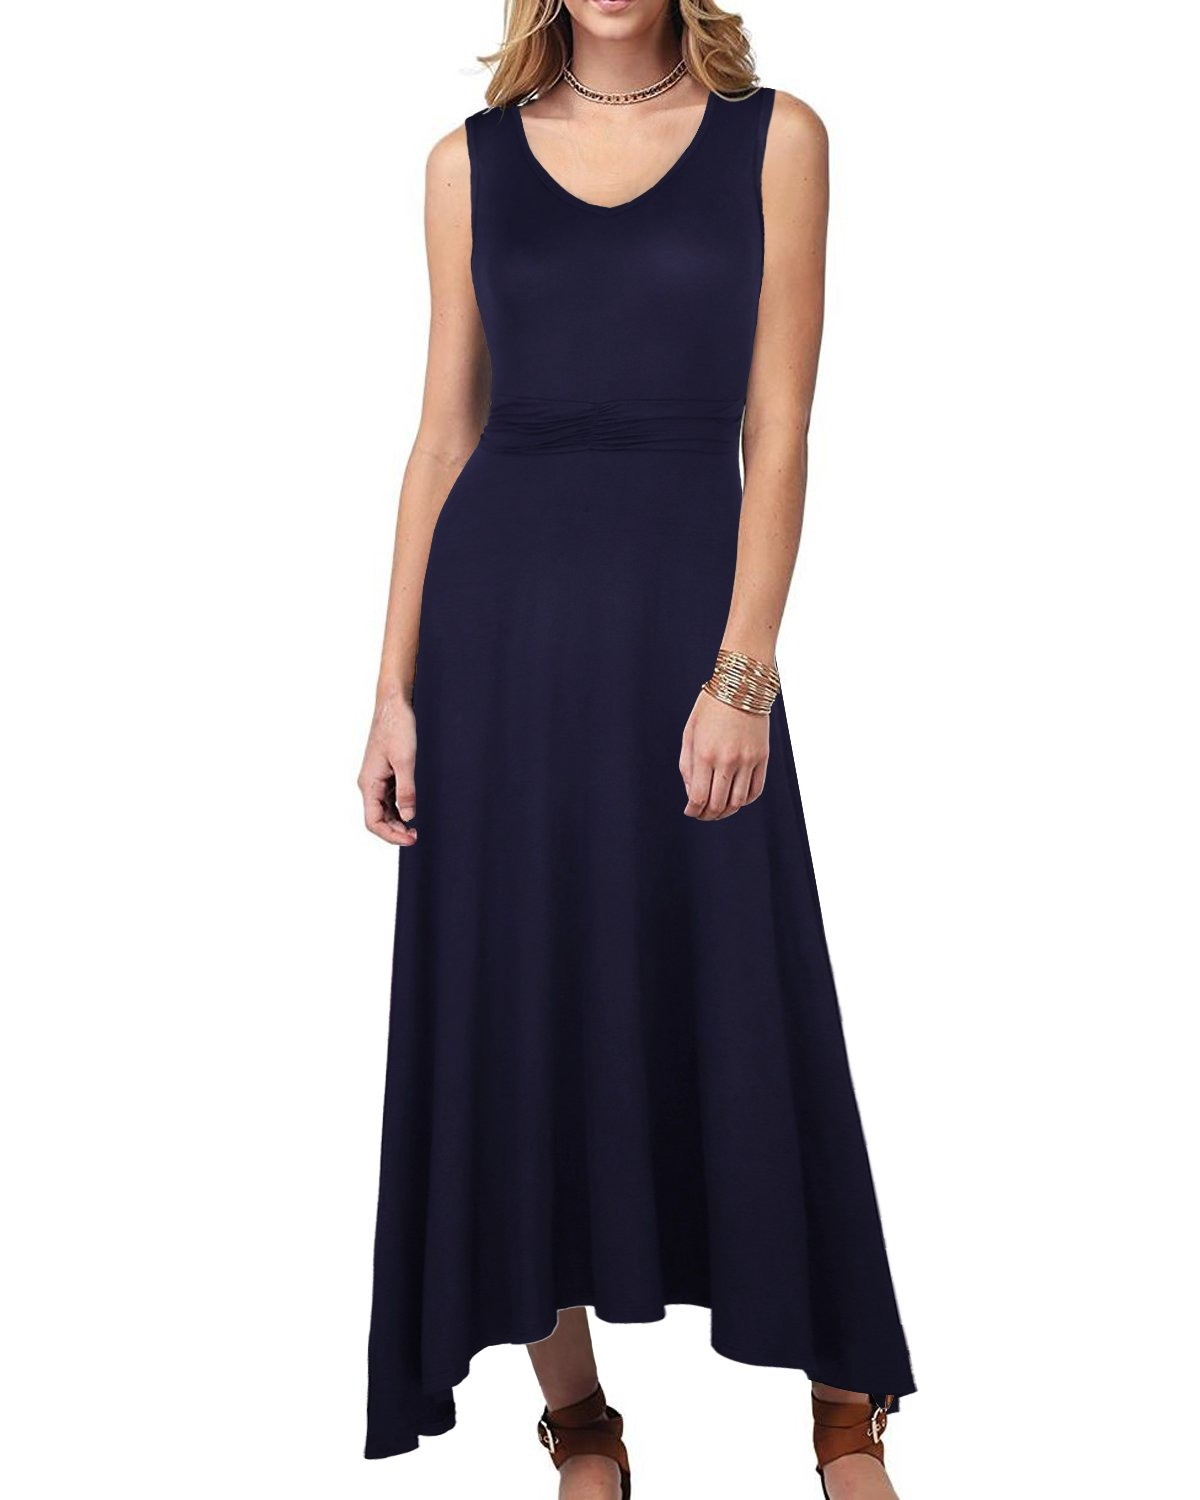 OUGES Women's V Neck Sleeveless Summer Casual Long Maxi Dresses(Navy,S) ¡­ by OUGES (Image #1)